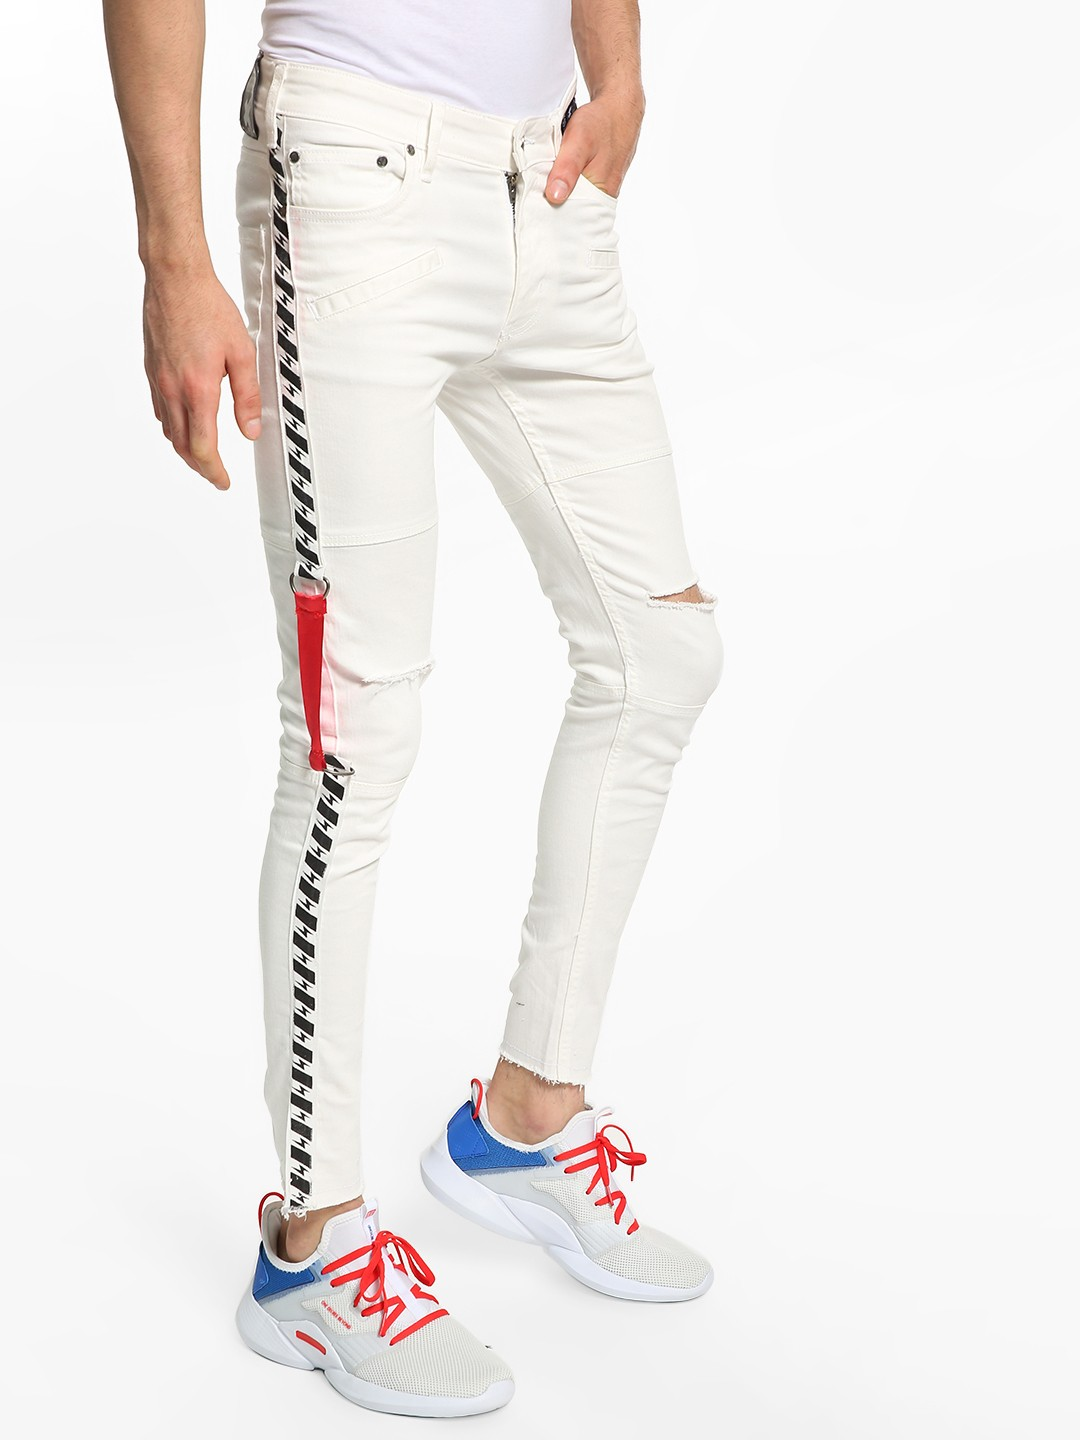 Kultprit White Side Tape Ripped Skinny Jeans 1